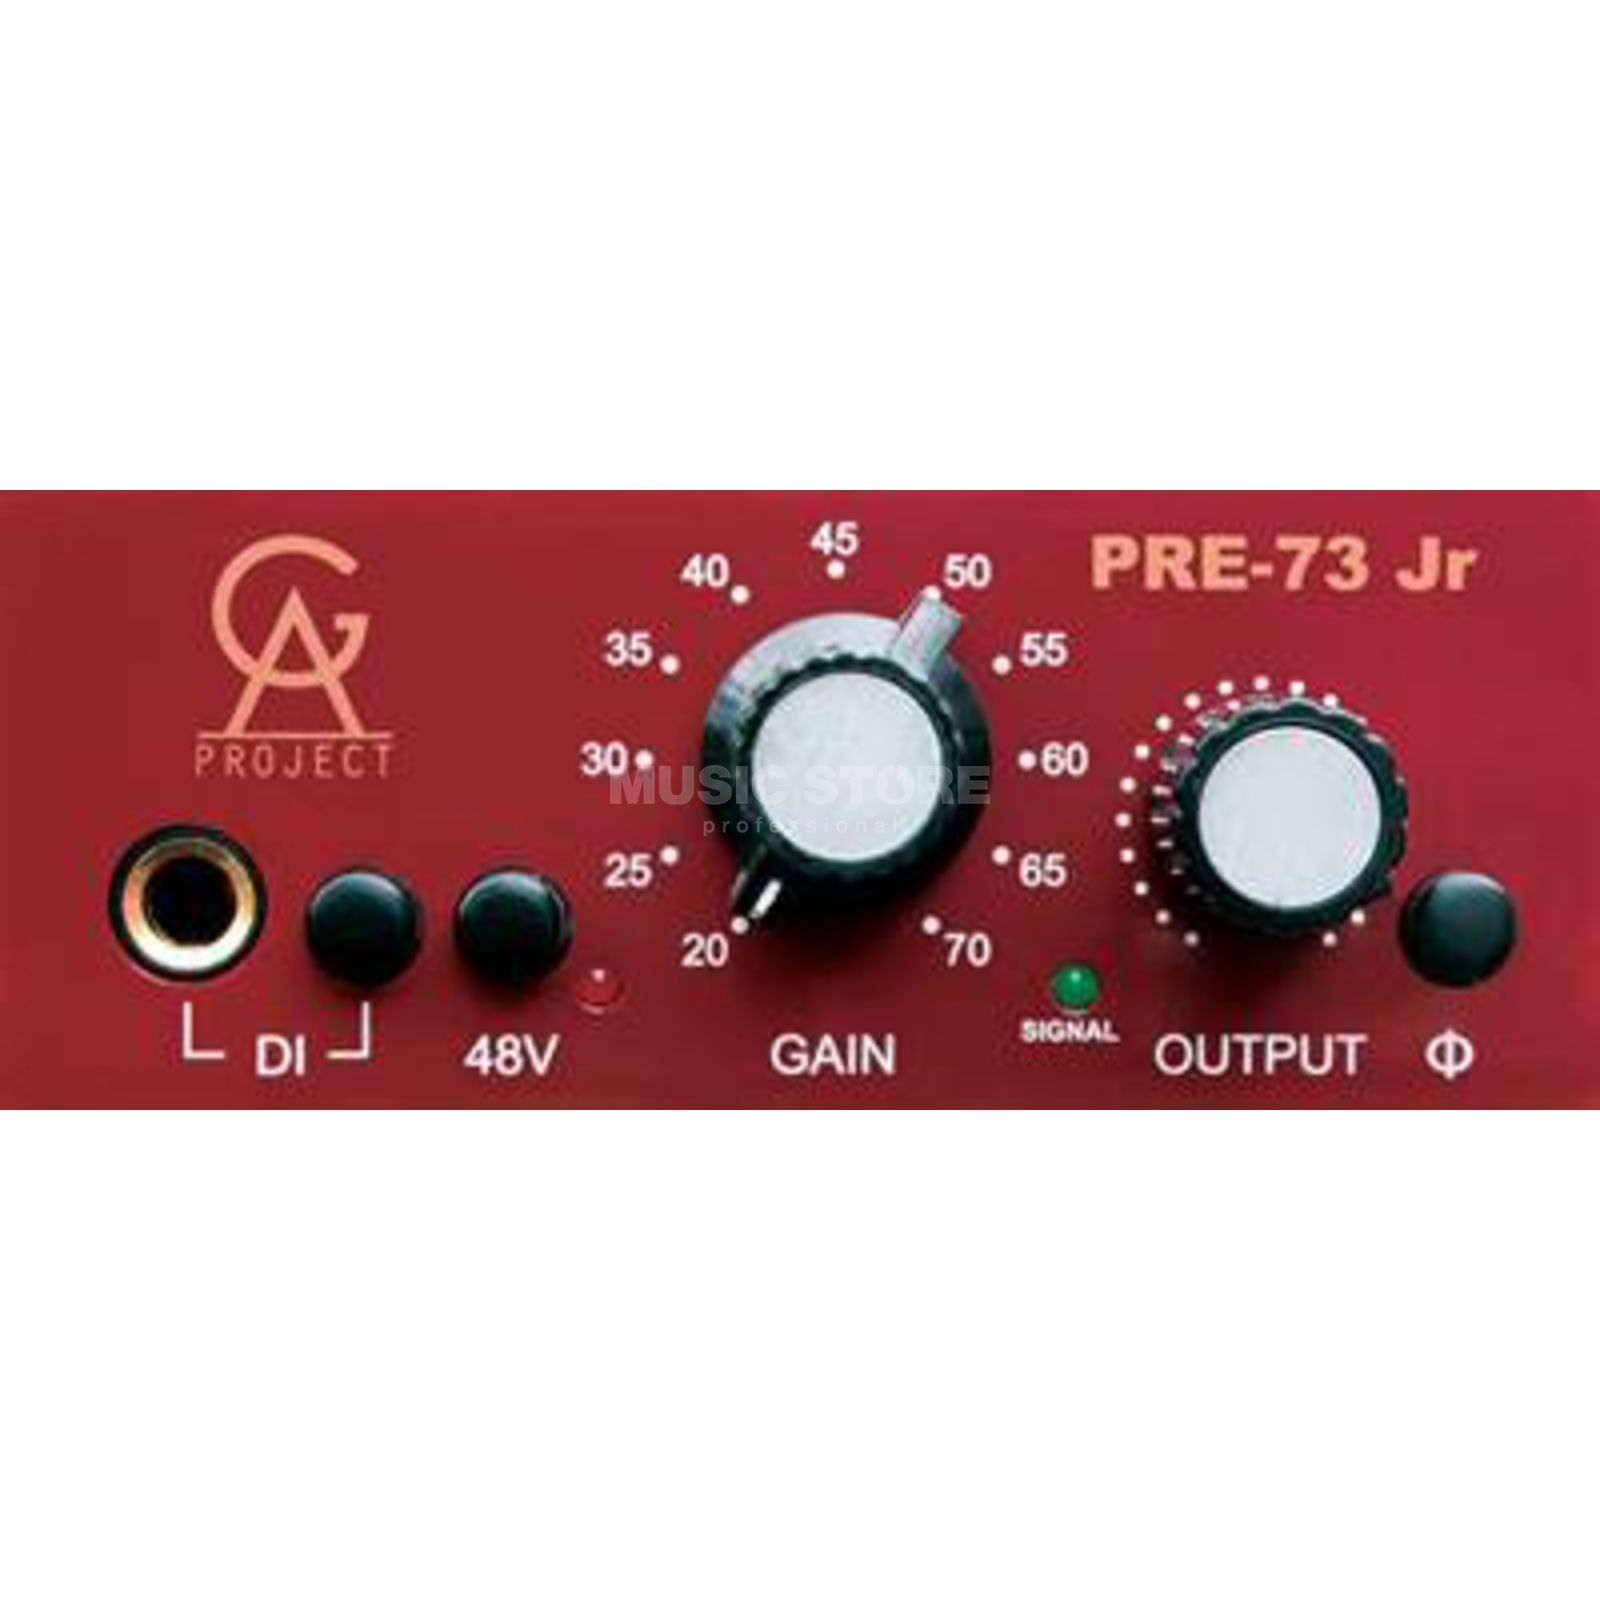 Golden Age Project PRE-73 Jr. Mic/Line Preamp  Produktbillede